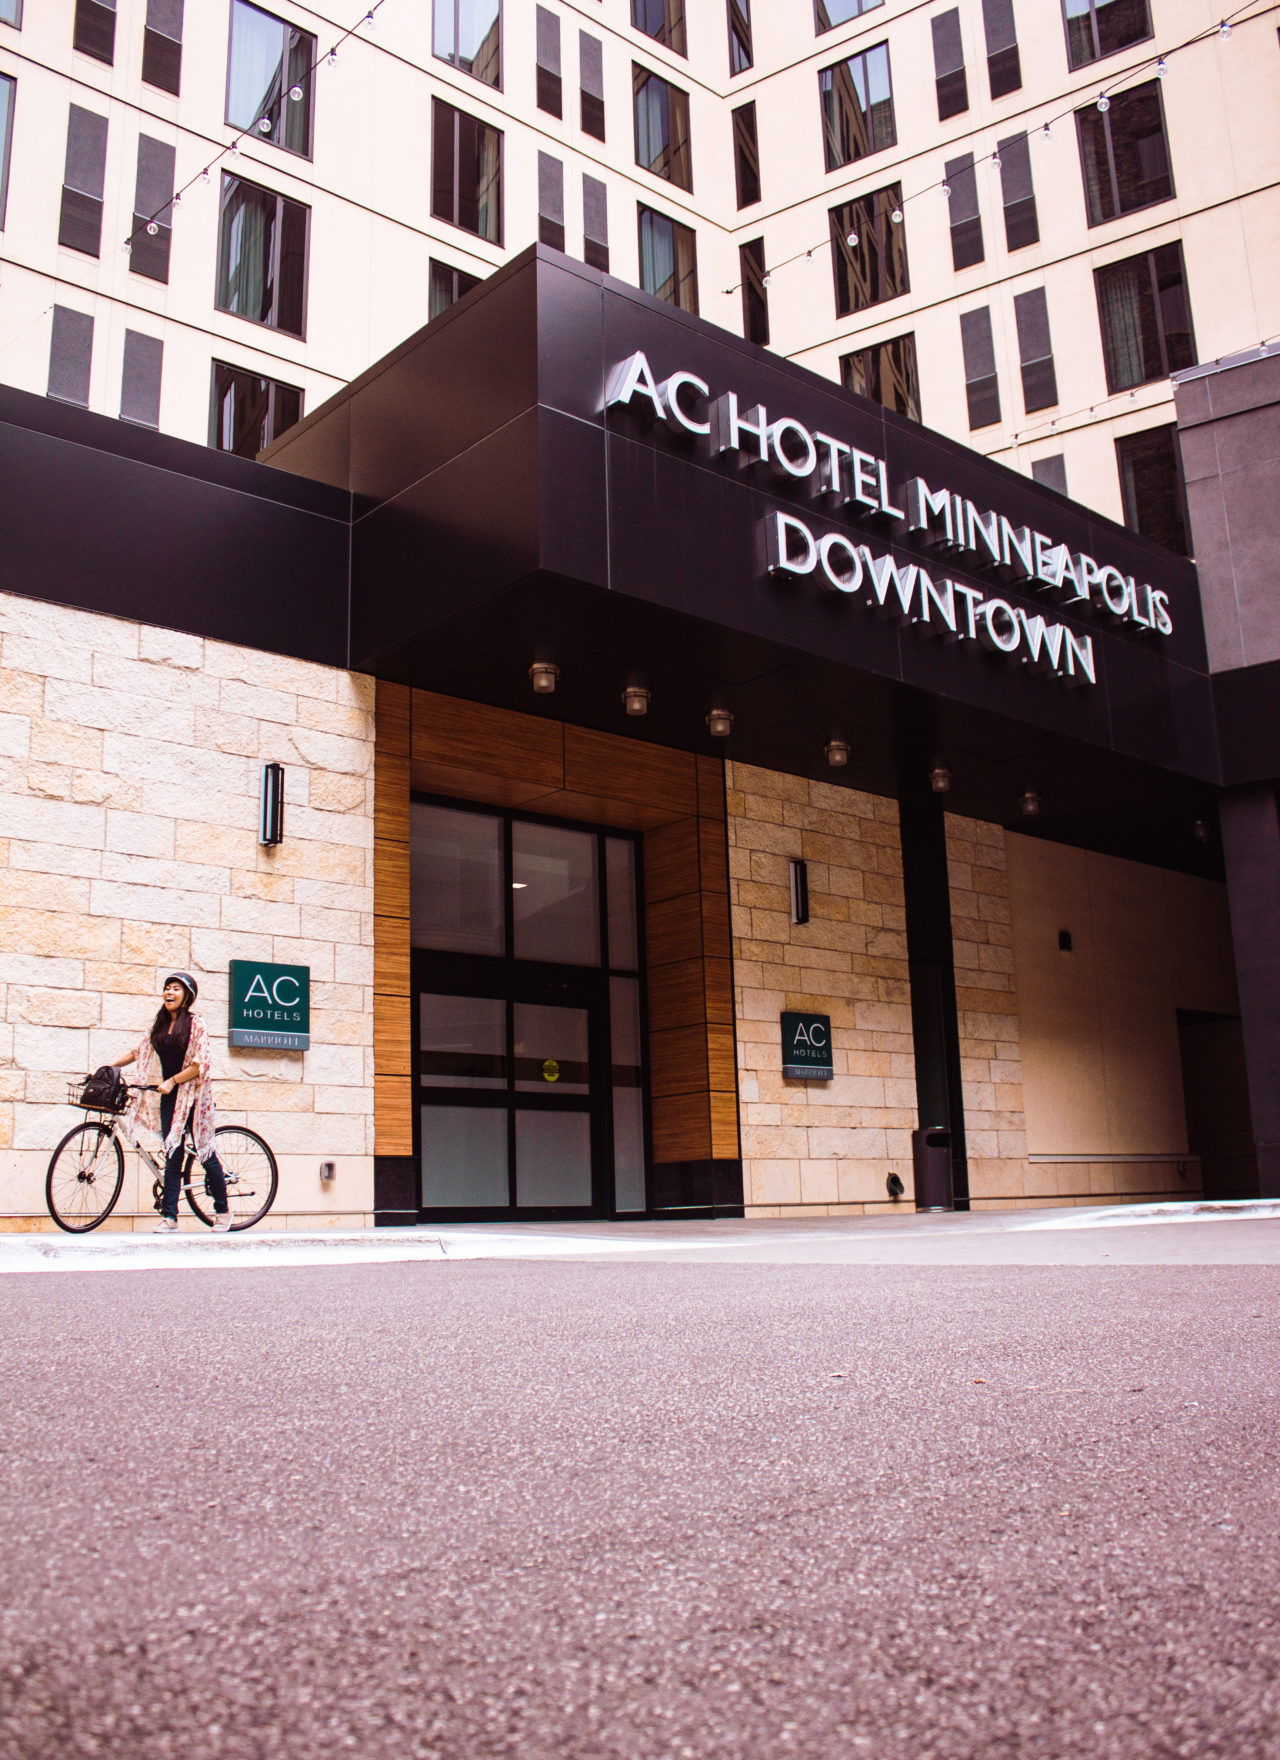 The Only Hotel Where You Can Conveniently Enjoy Minneapolis